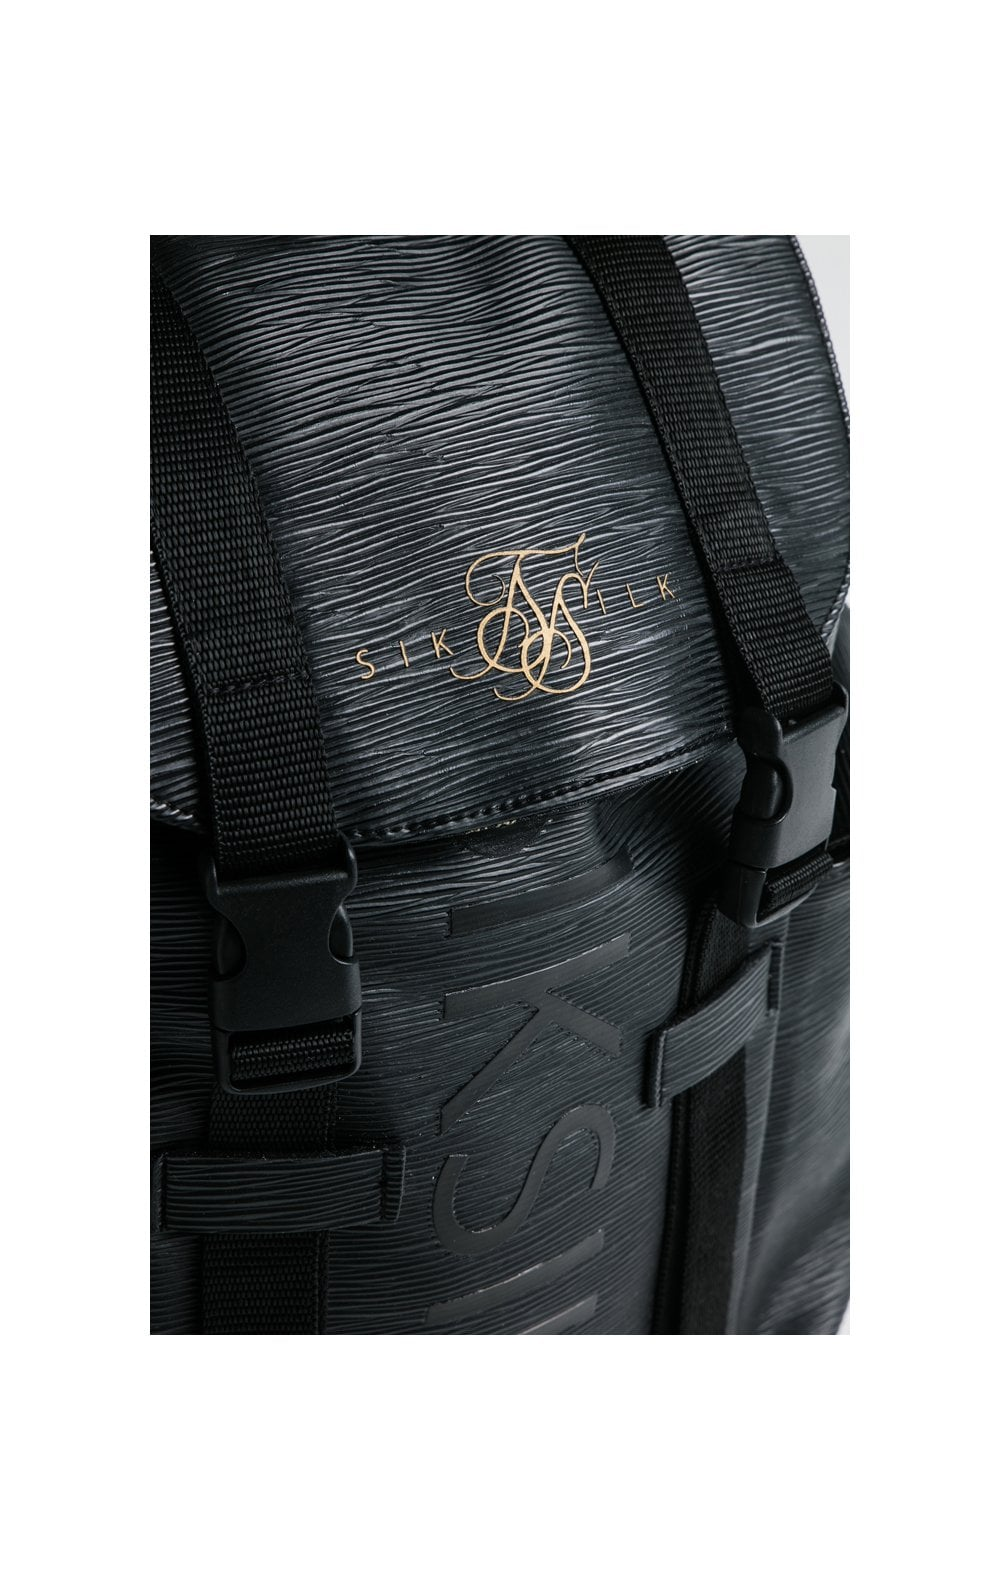 SikSilk Elite Backpack- Black (2)